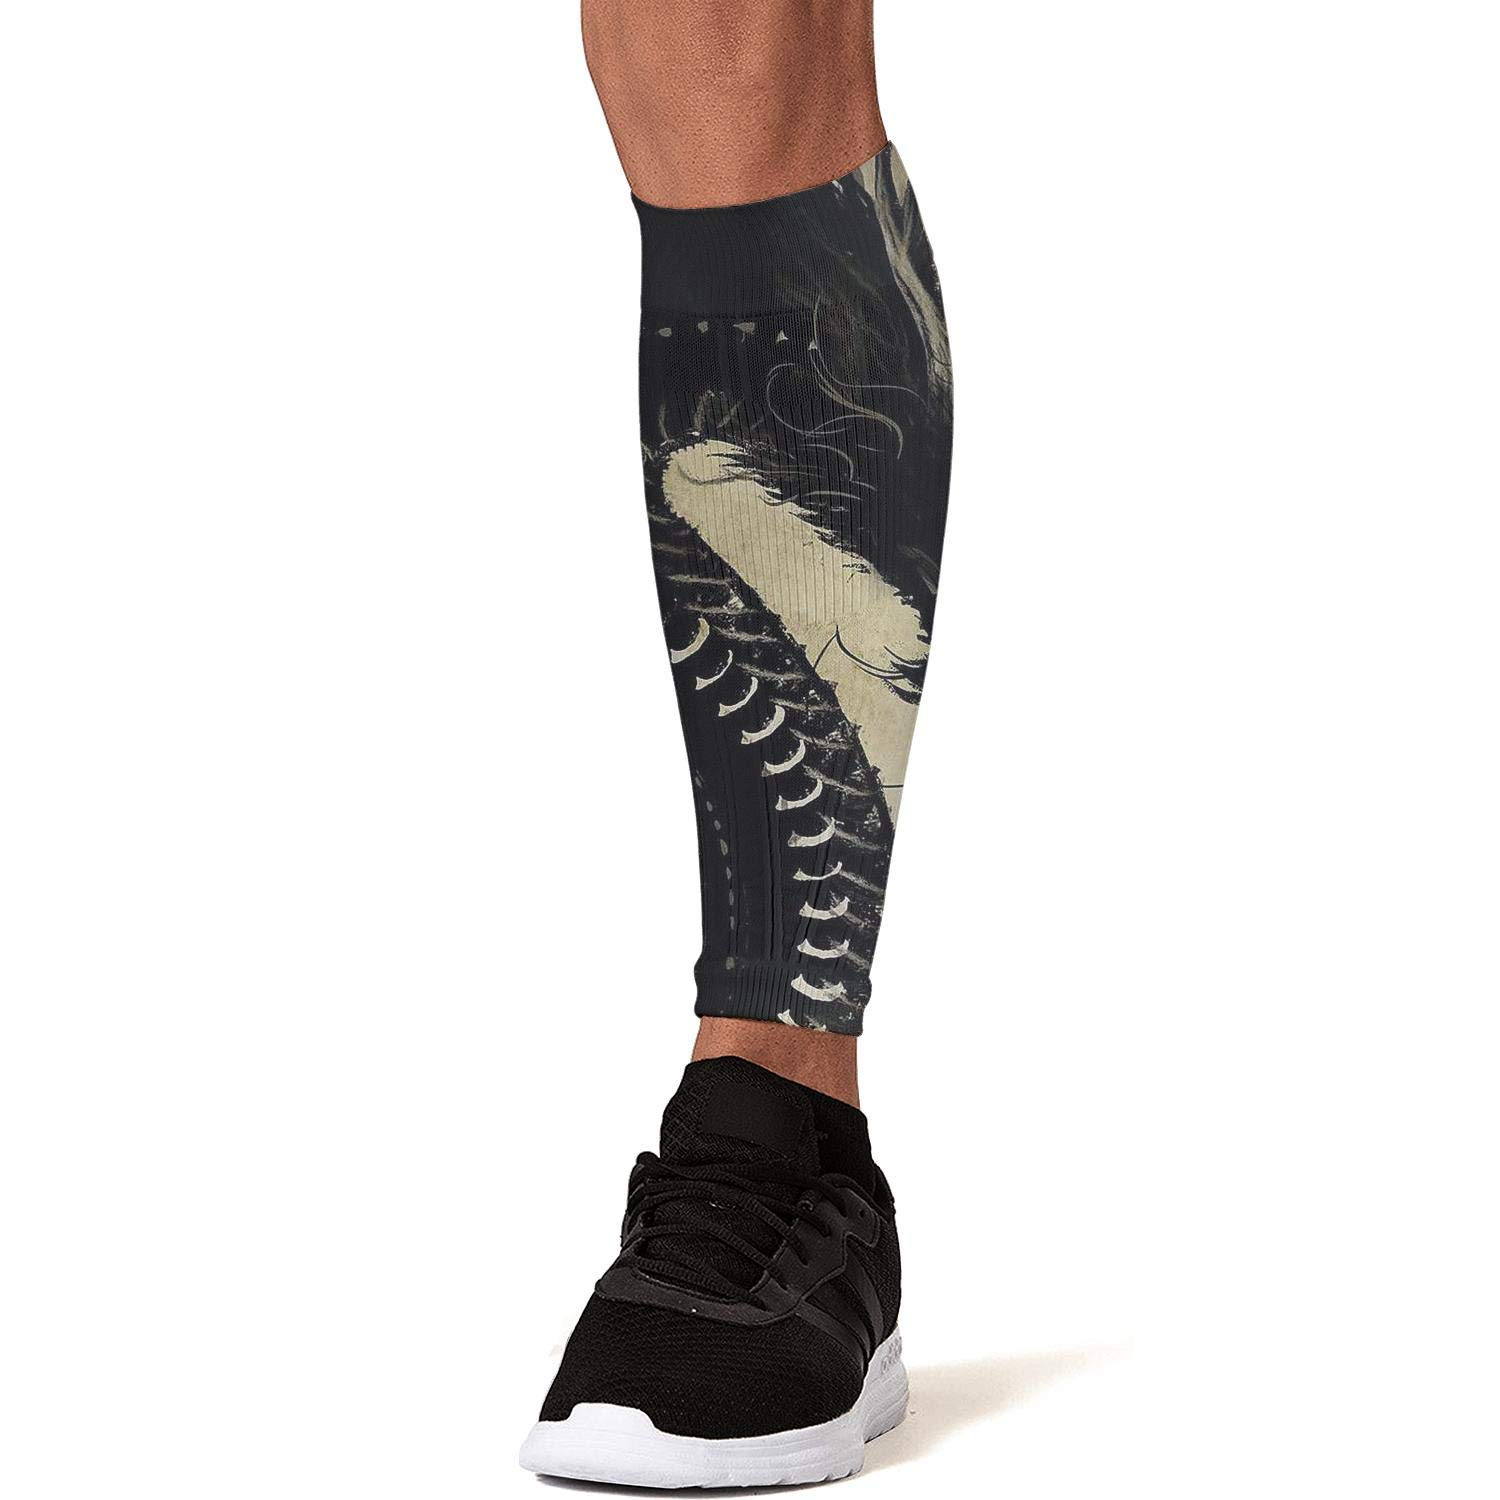 Smilelolly mysterious dragon Calf Compression Sleeves Helps Faster Recovery Leg Sleeves for Men Women